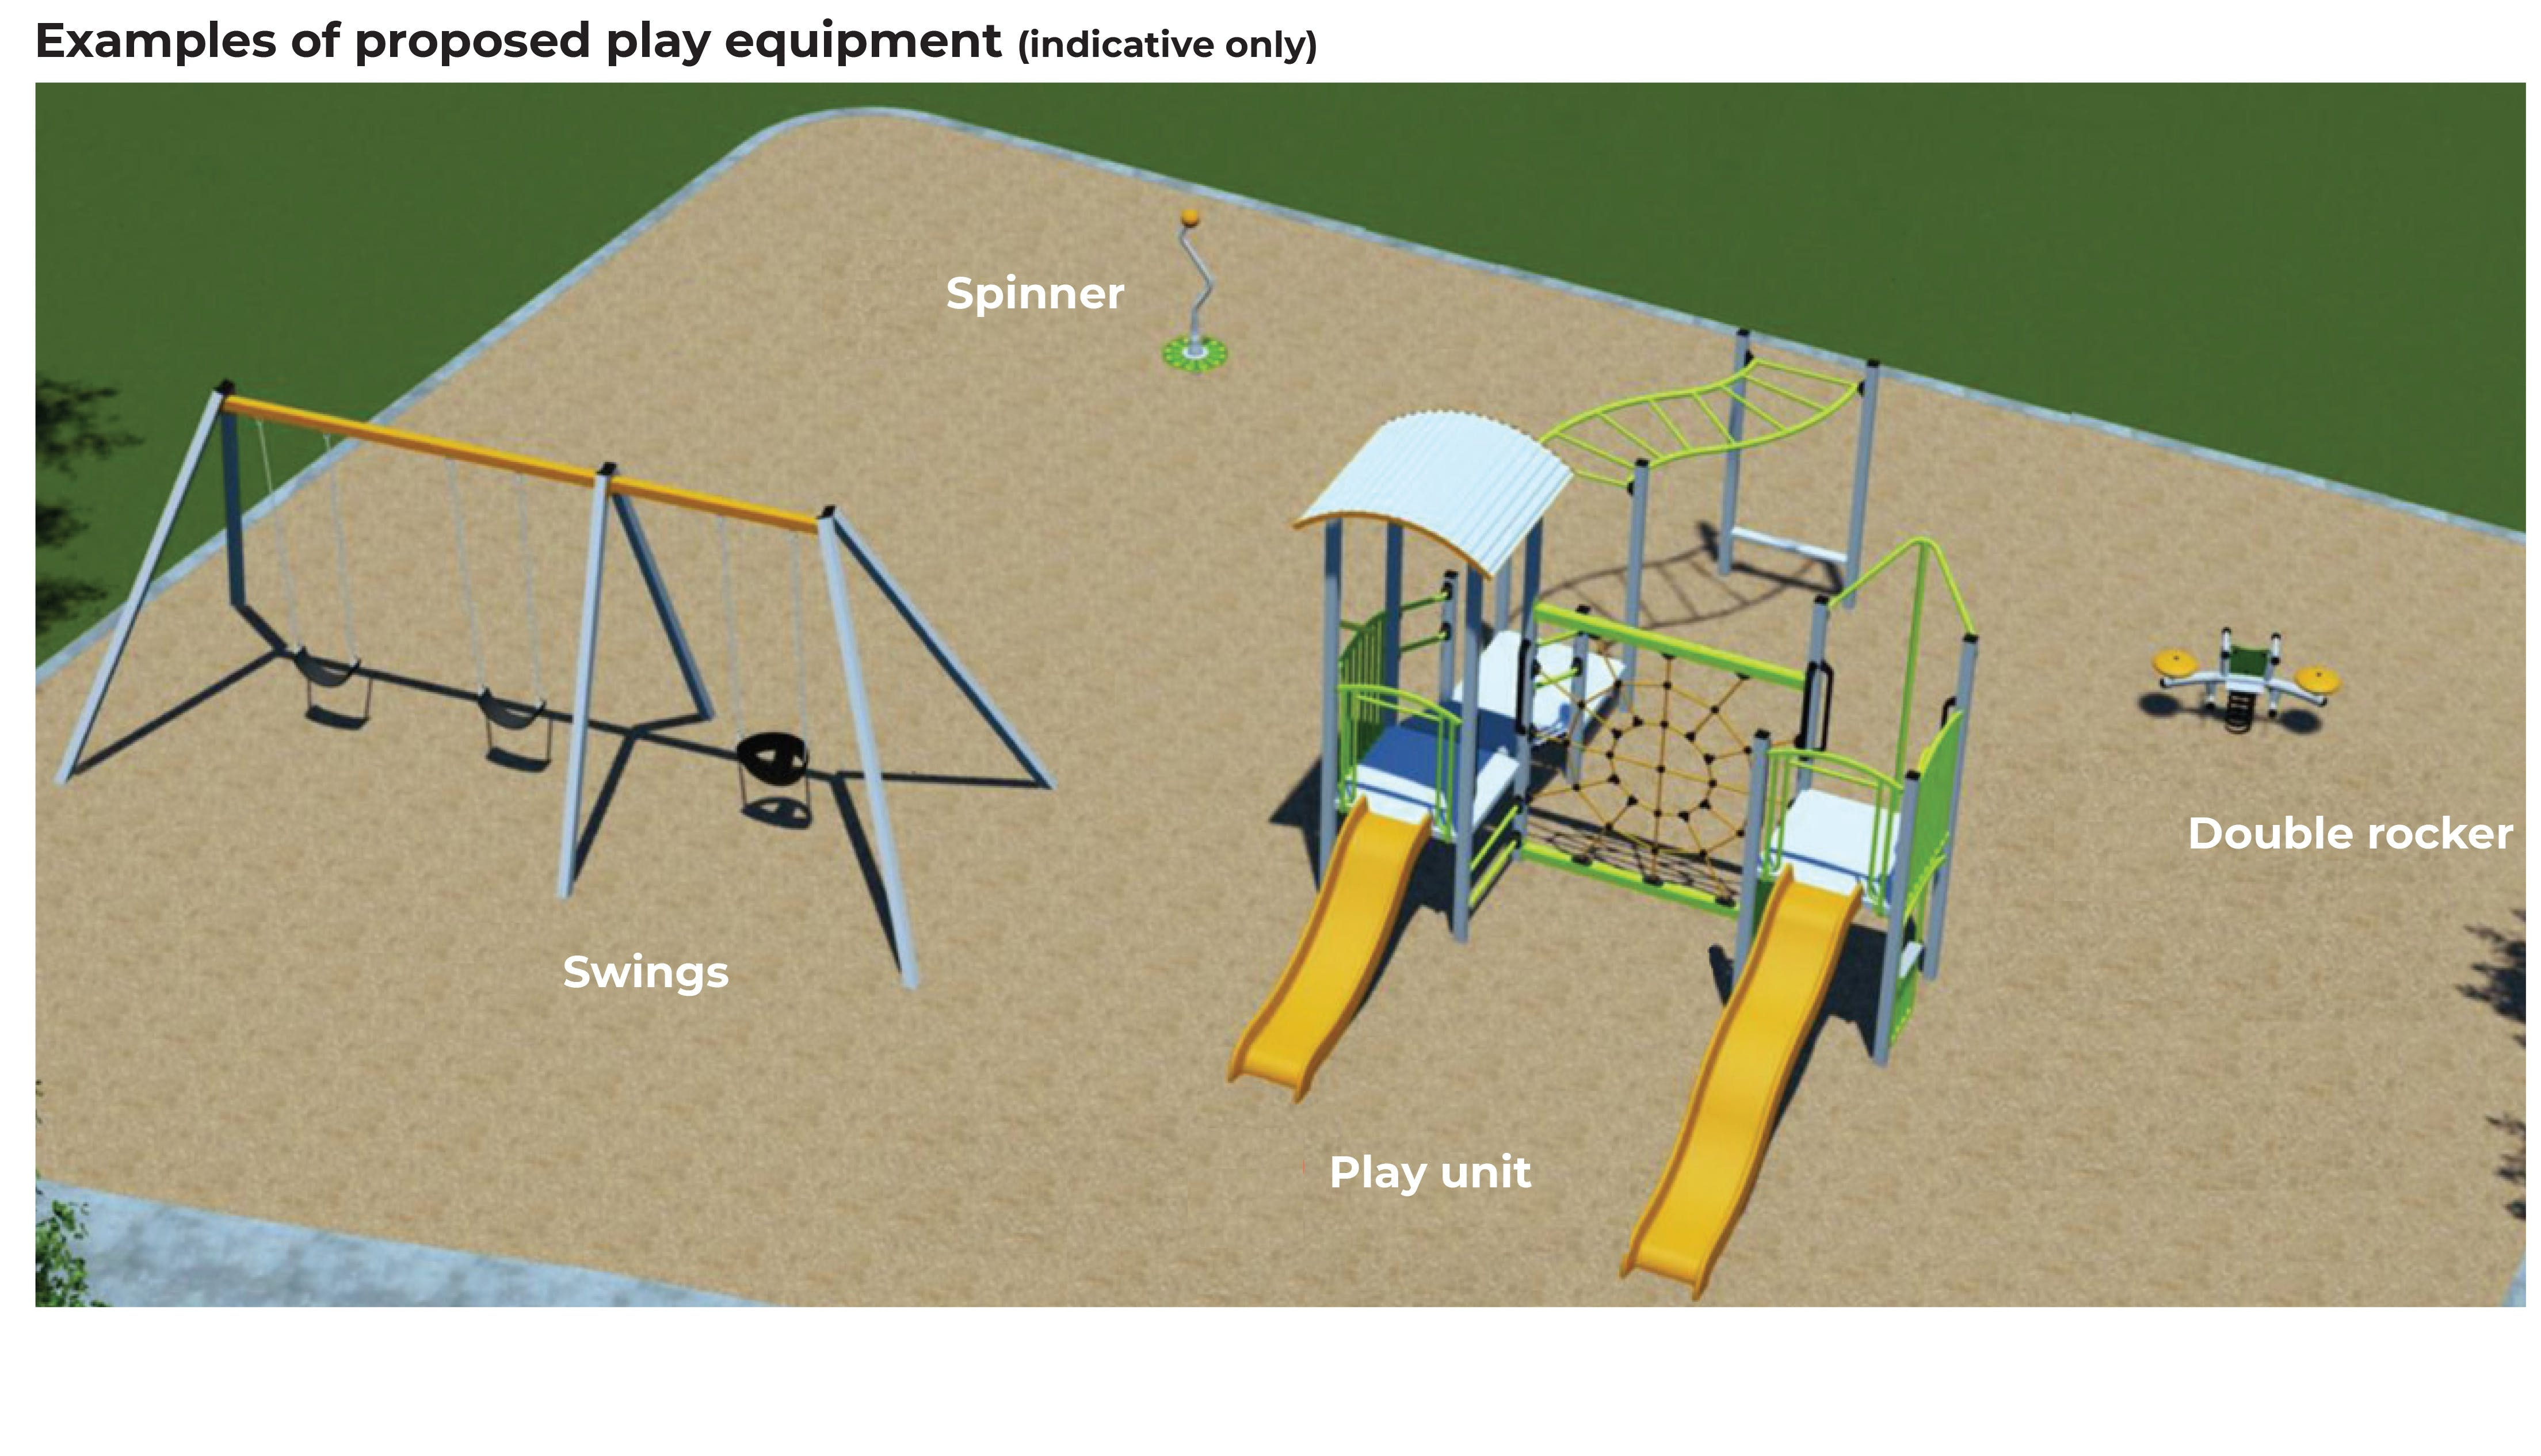 Logan Court Reserve - Proposed Play Equipment